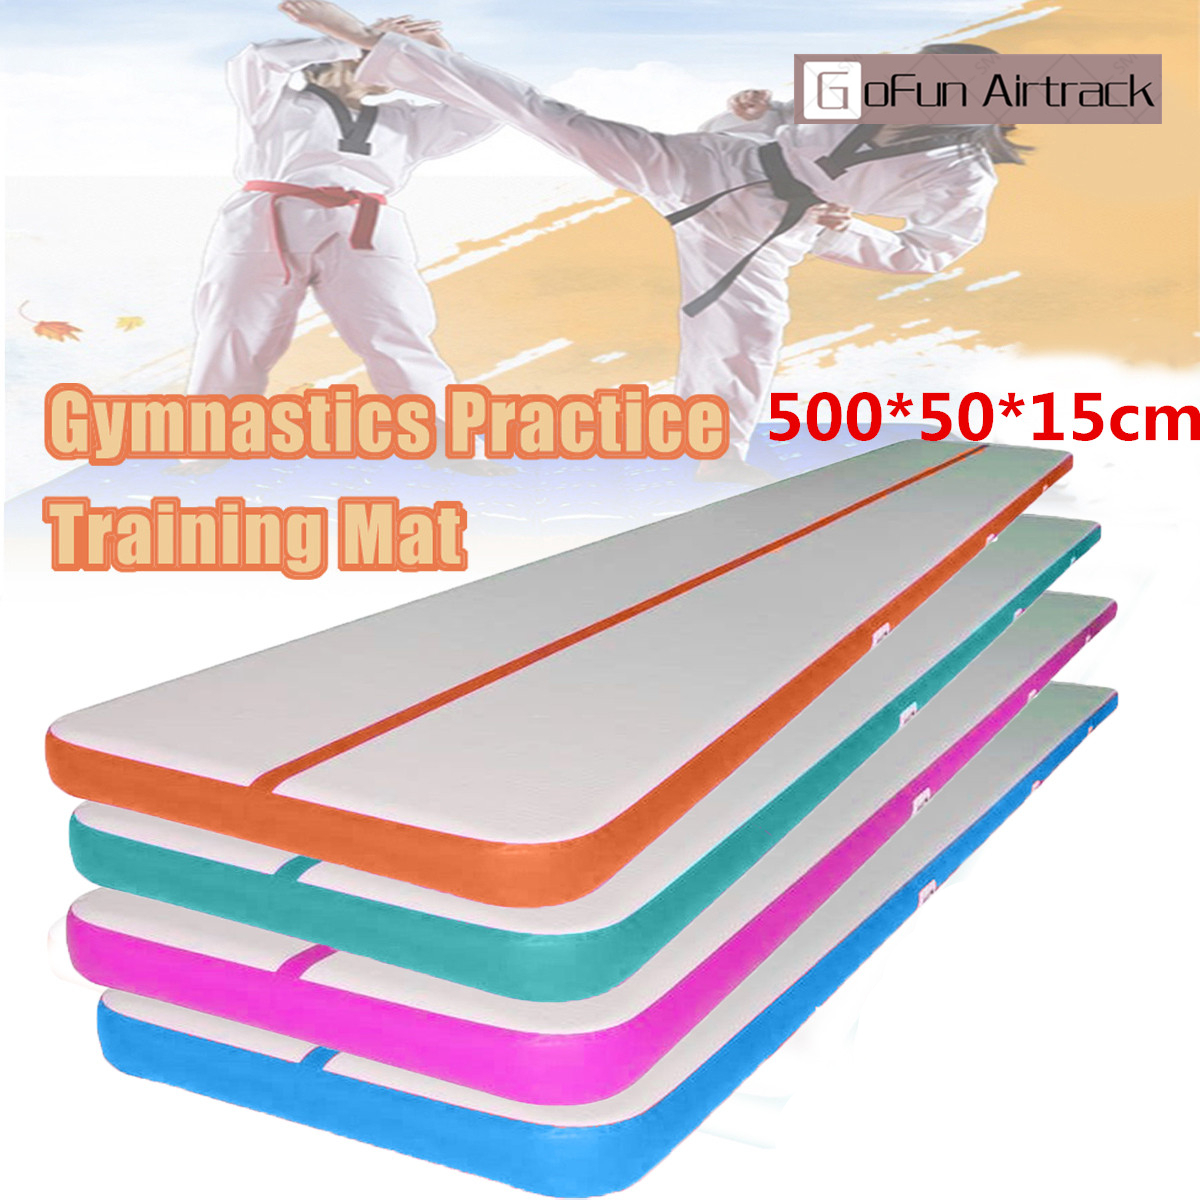 1Pcs 16.4ft x 1.3ft Inflatable Gymnastics Tumbling Mats Air Track Floor Airtrack Tumbling Yoga Mat Practice Training Pad For Home Use, Gymnastics Training, Beach